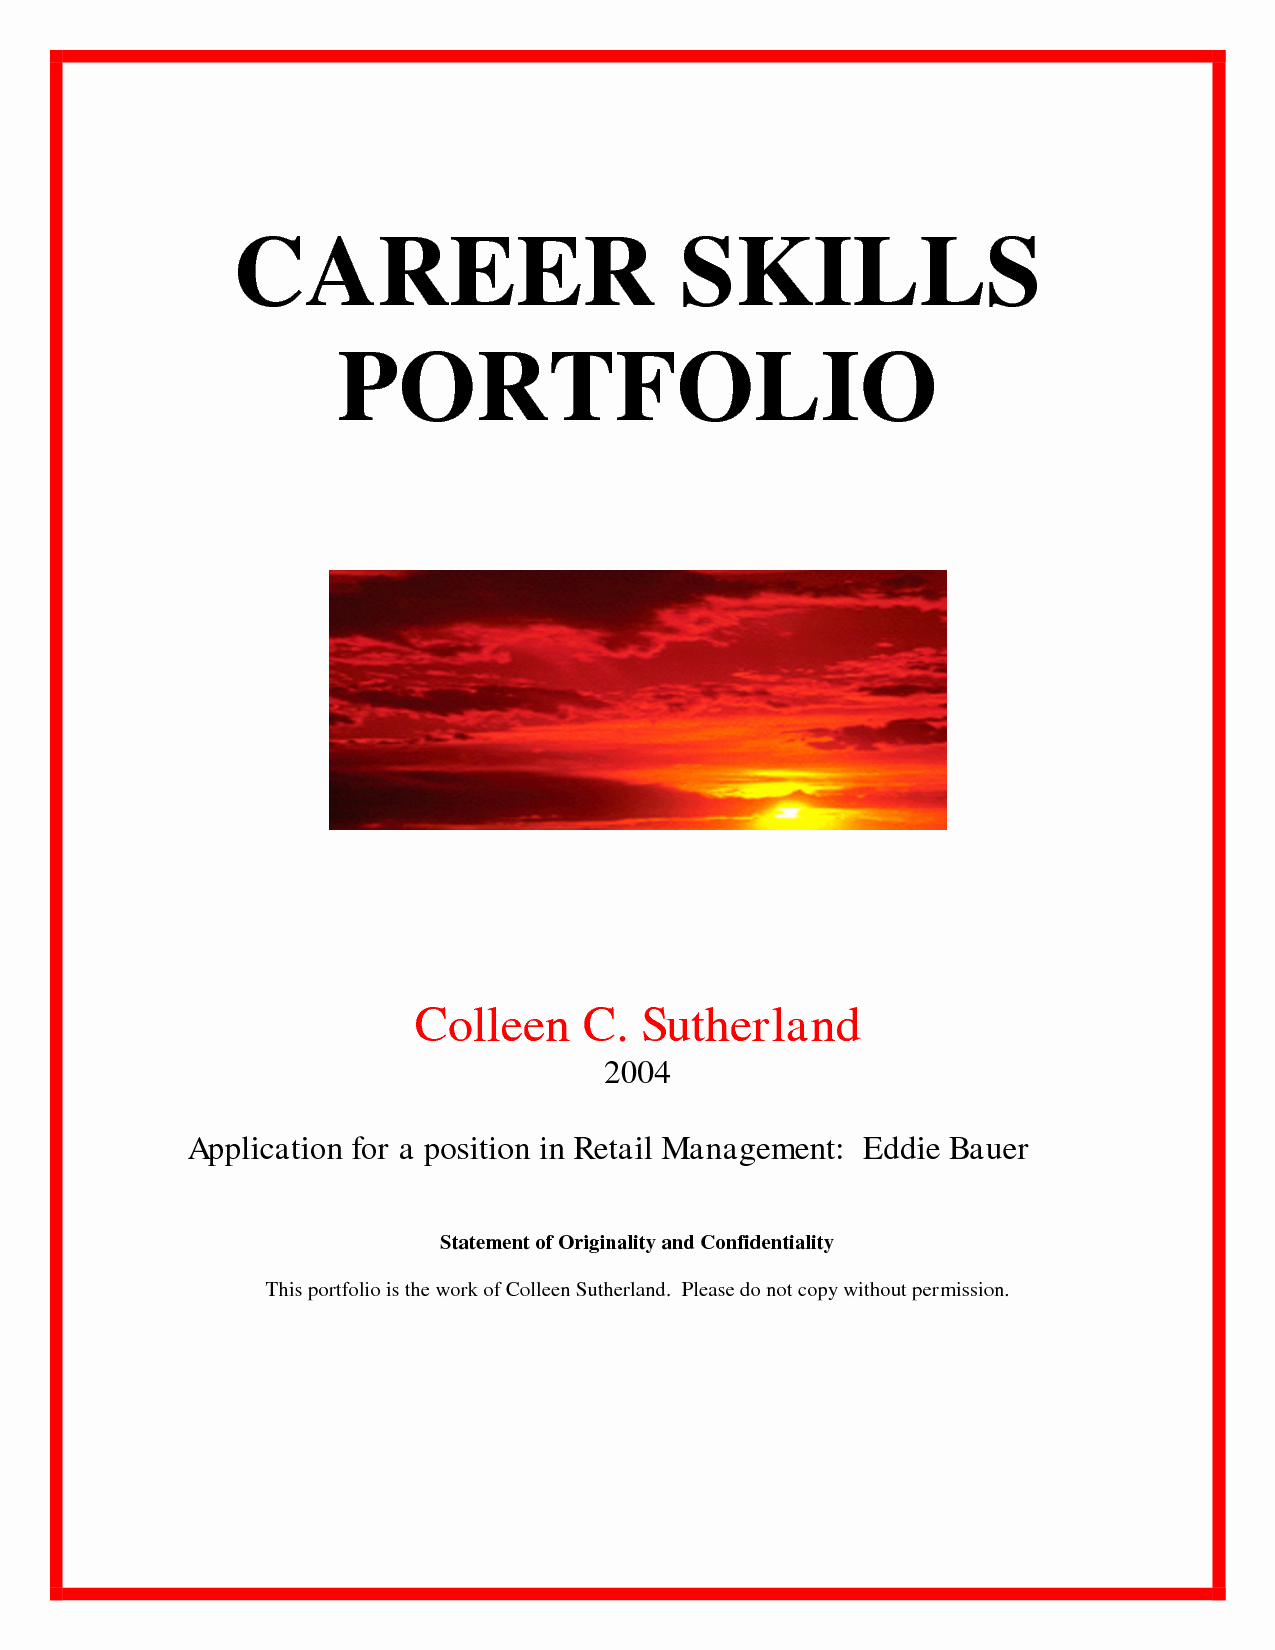 Best S Of Portfolio Cover Page Template Career